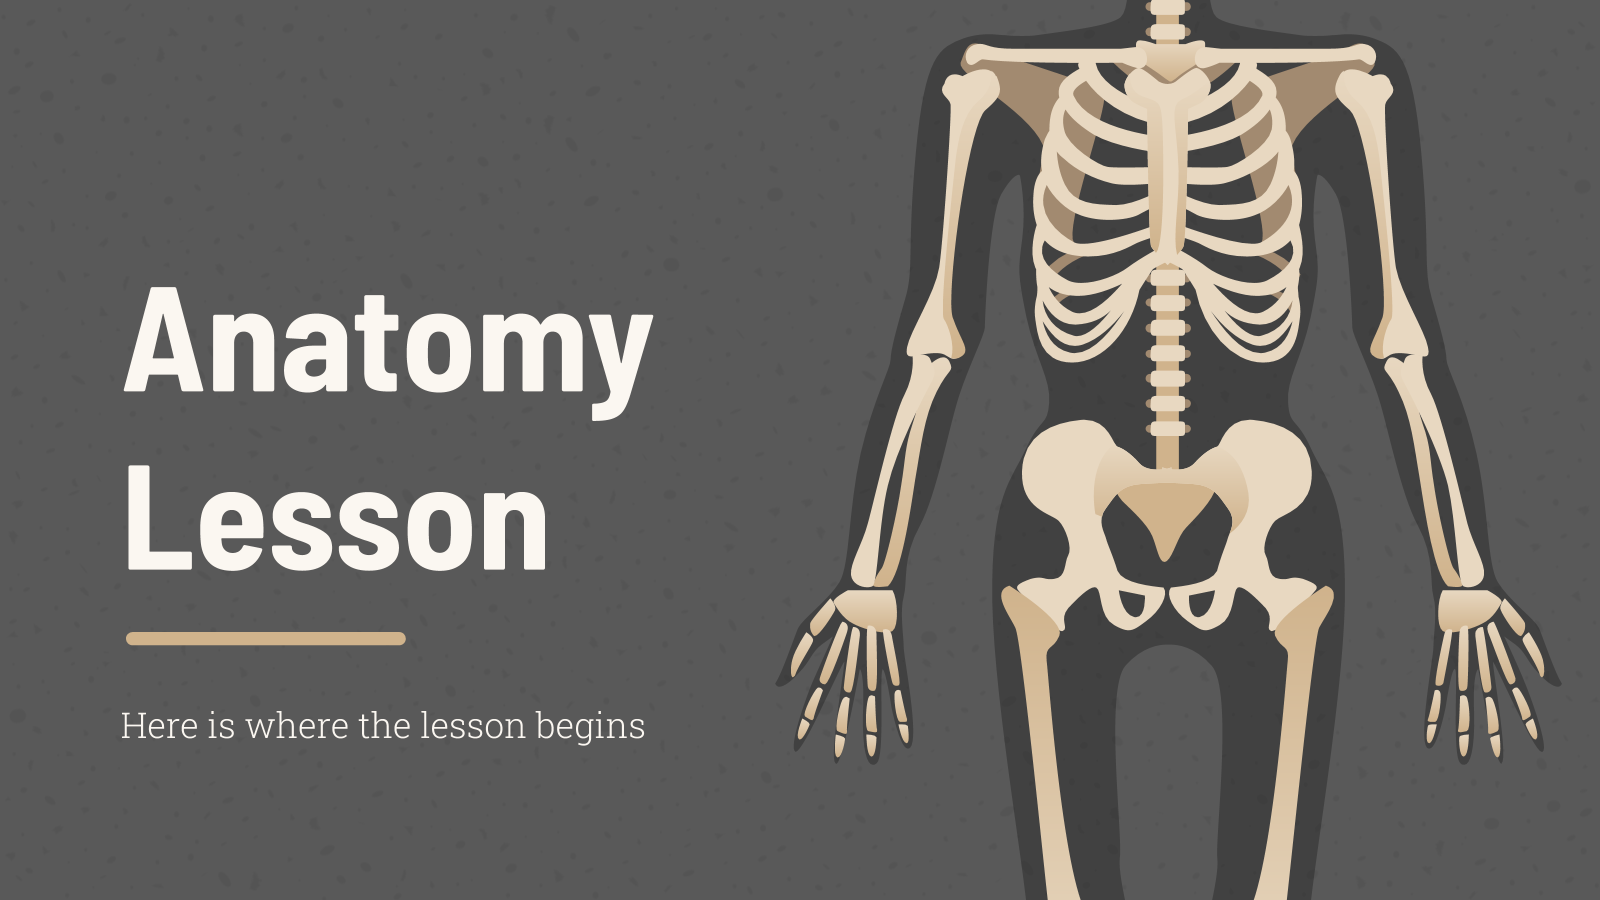 Anatomy Lesson presentation template